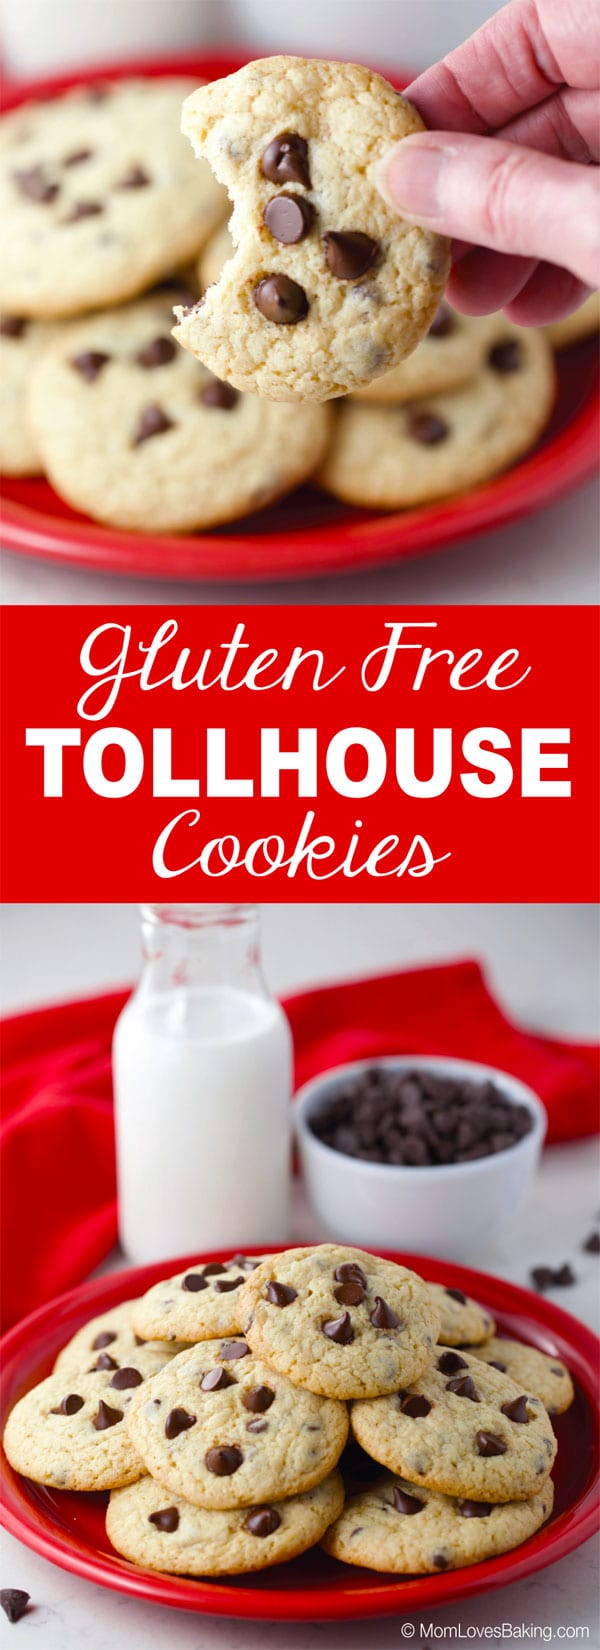 Gluten free tollhouse chocolate chip cookies